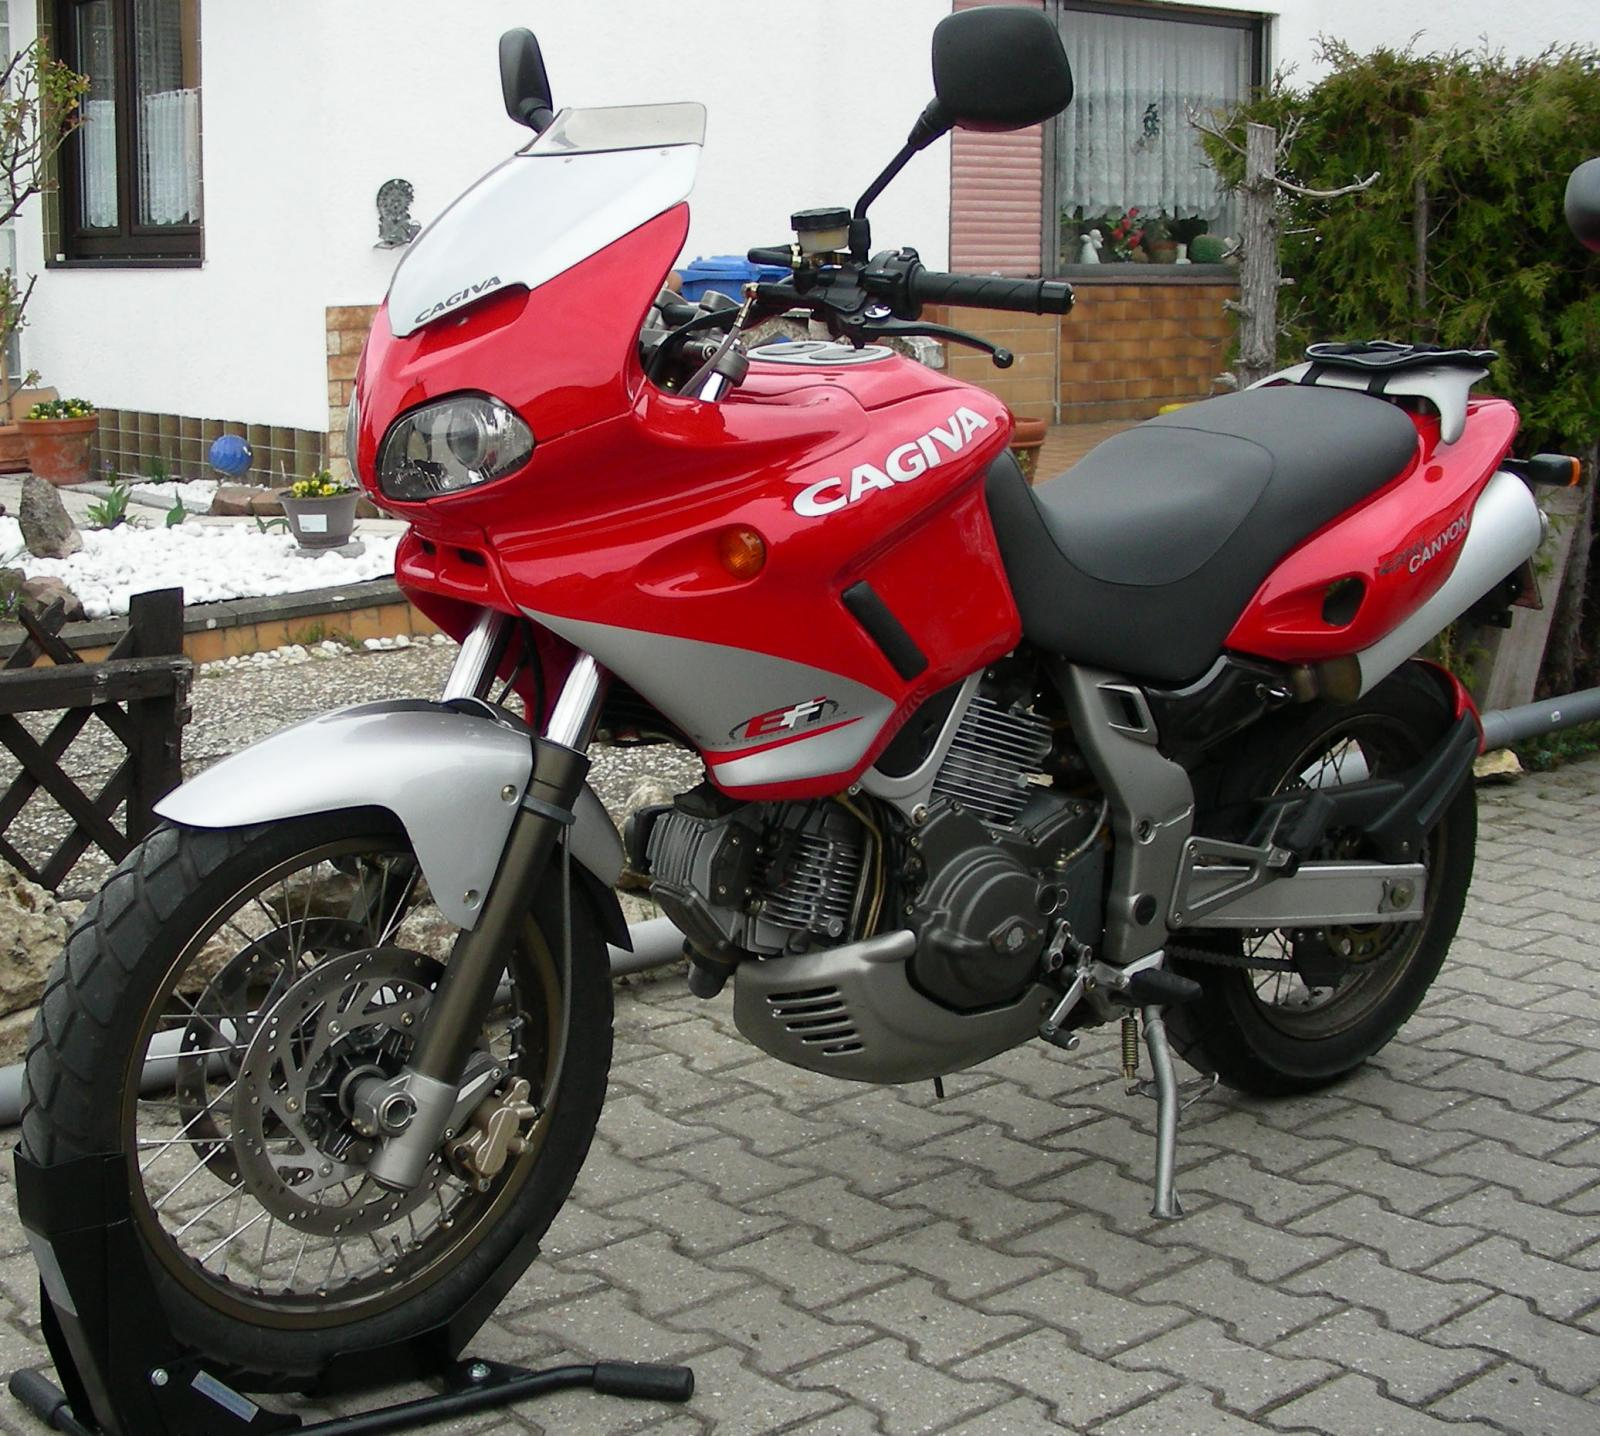 Cagiva Gran Canyon 900ie